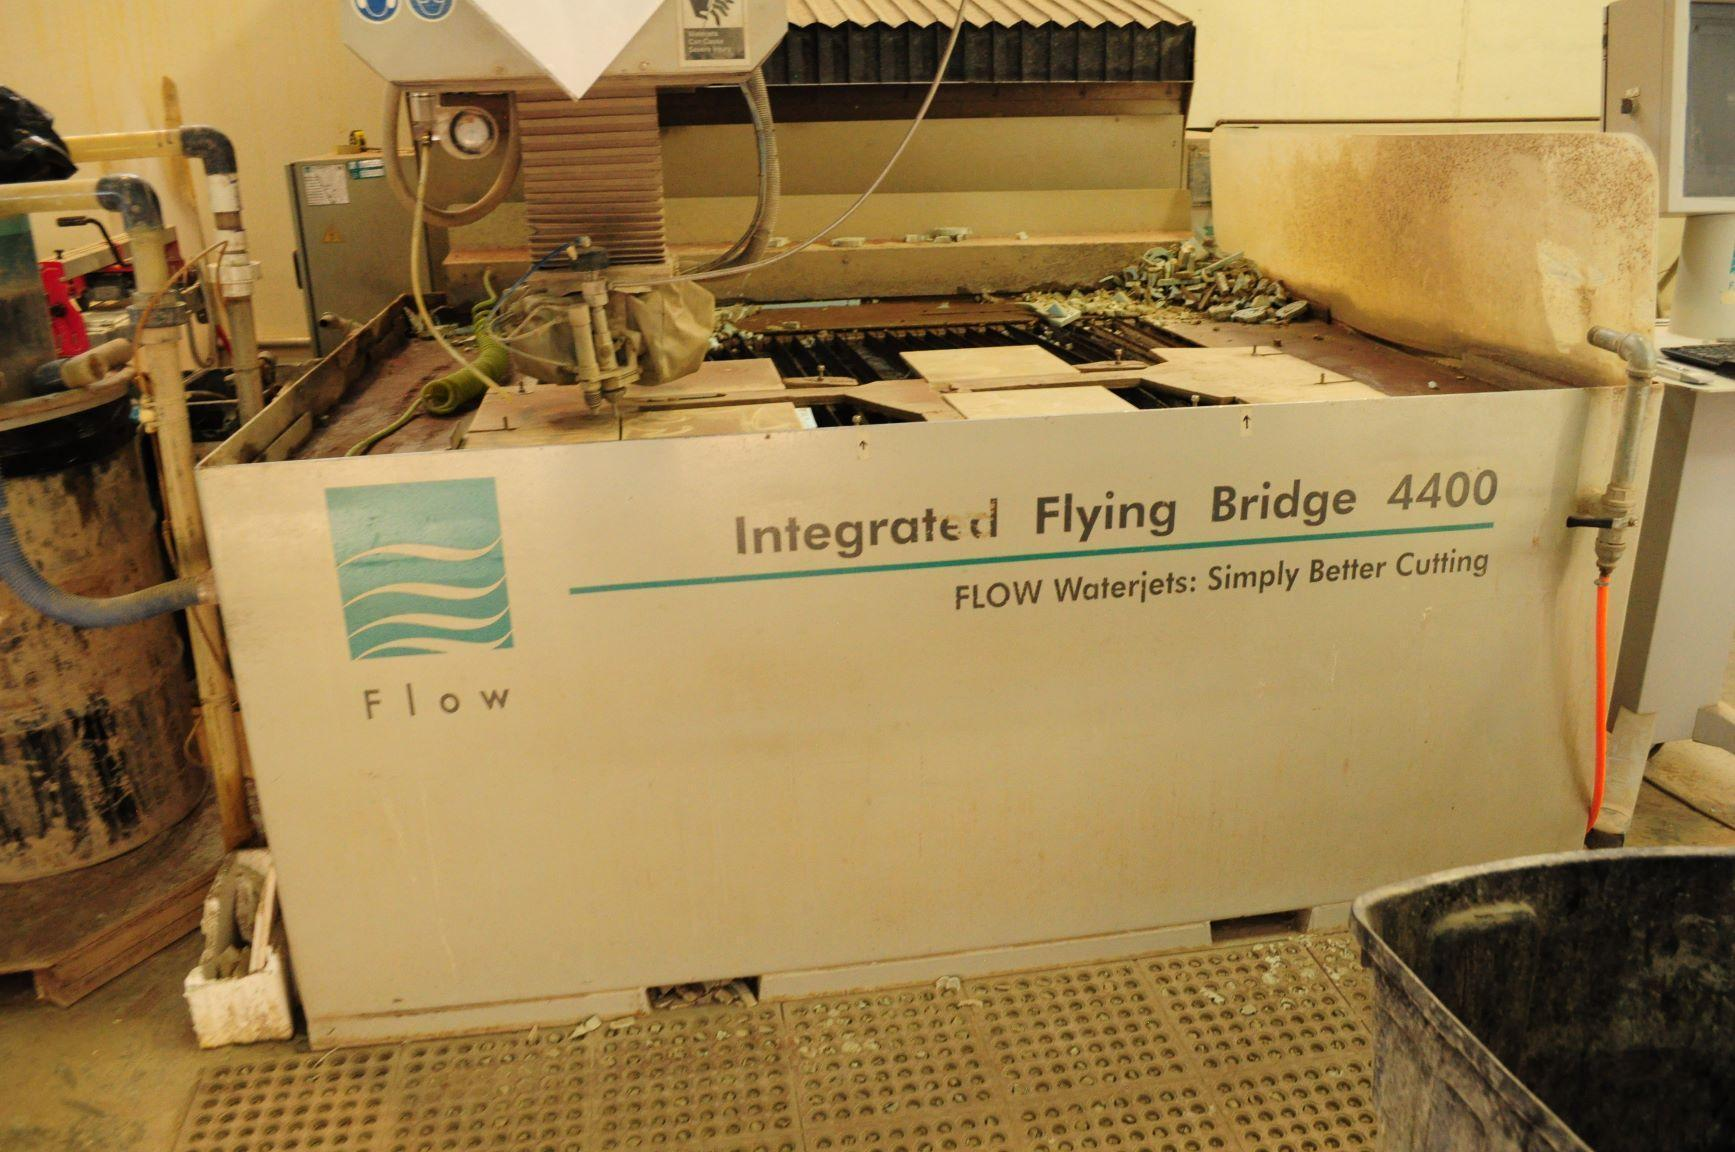 FLOWFlow IFB 4400 Dynamic Waterjet Cutting System - 2006